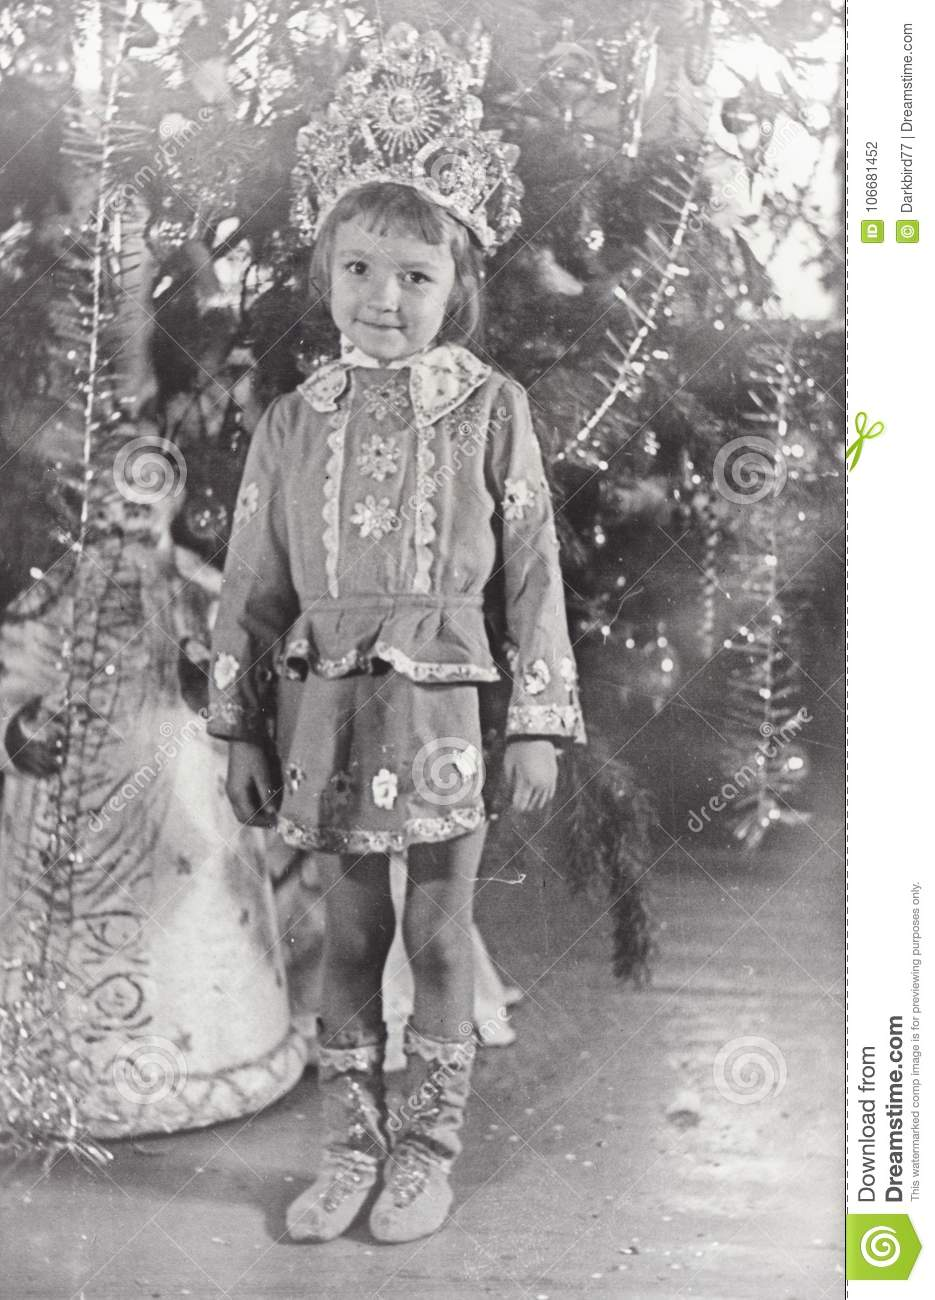 Vintage Photo Of Little Girl. Christmas And New Year Party